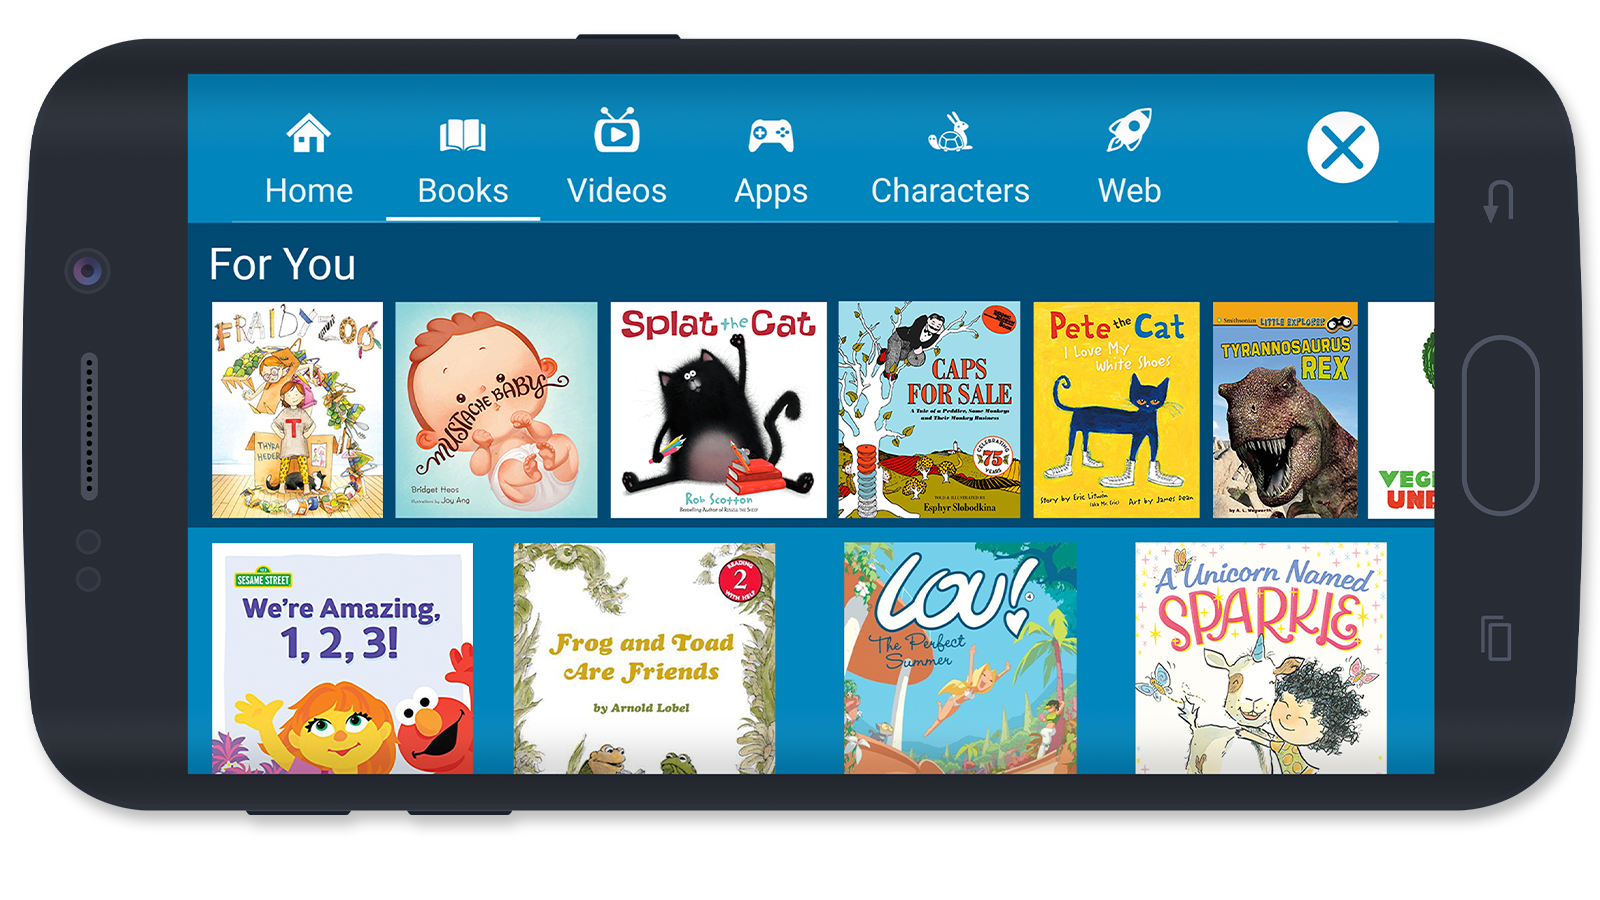 Amazon FreeTime comes to Android phones and tablets | TechCrunch